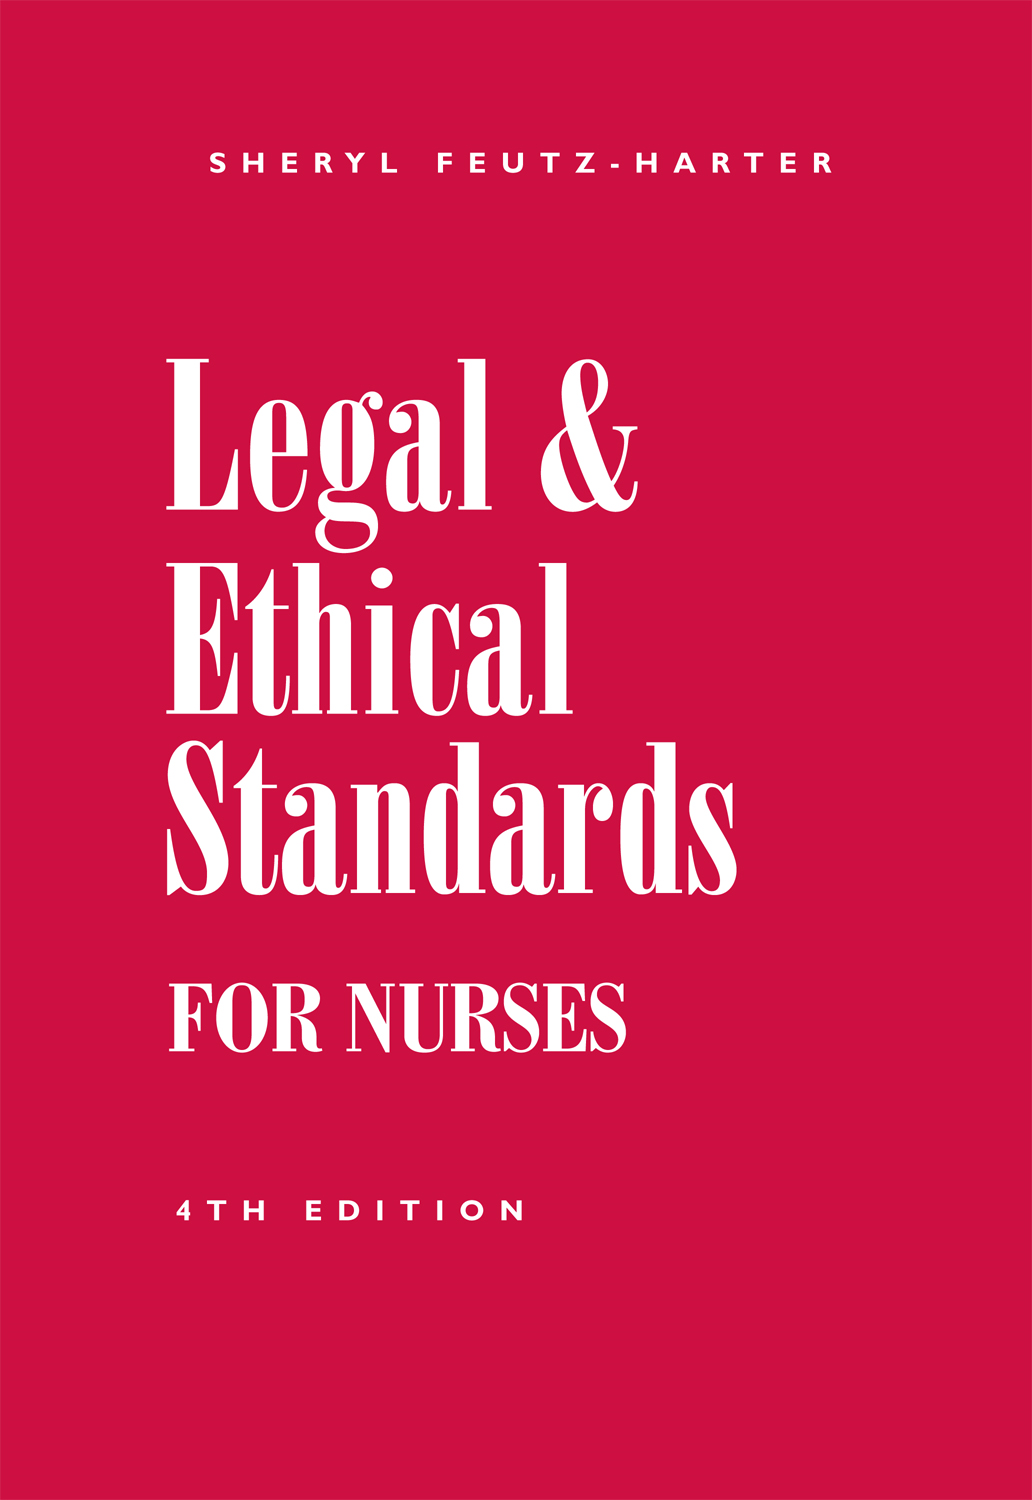 Legal & Ethical Standards for Nurses, Fourth Edition